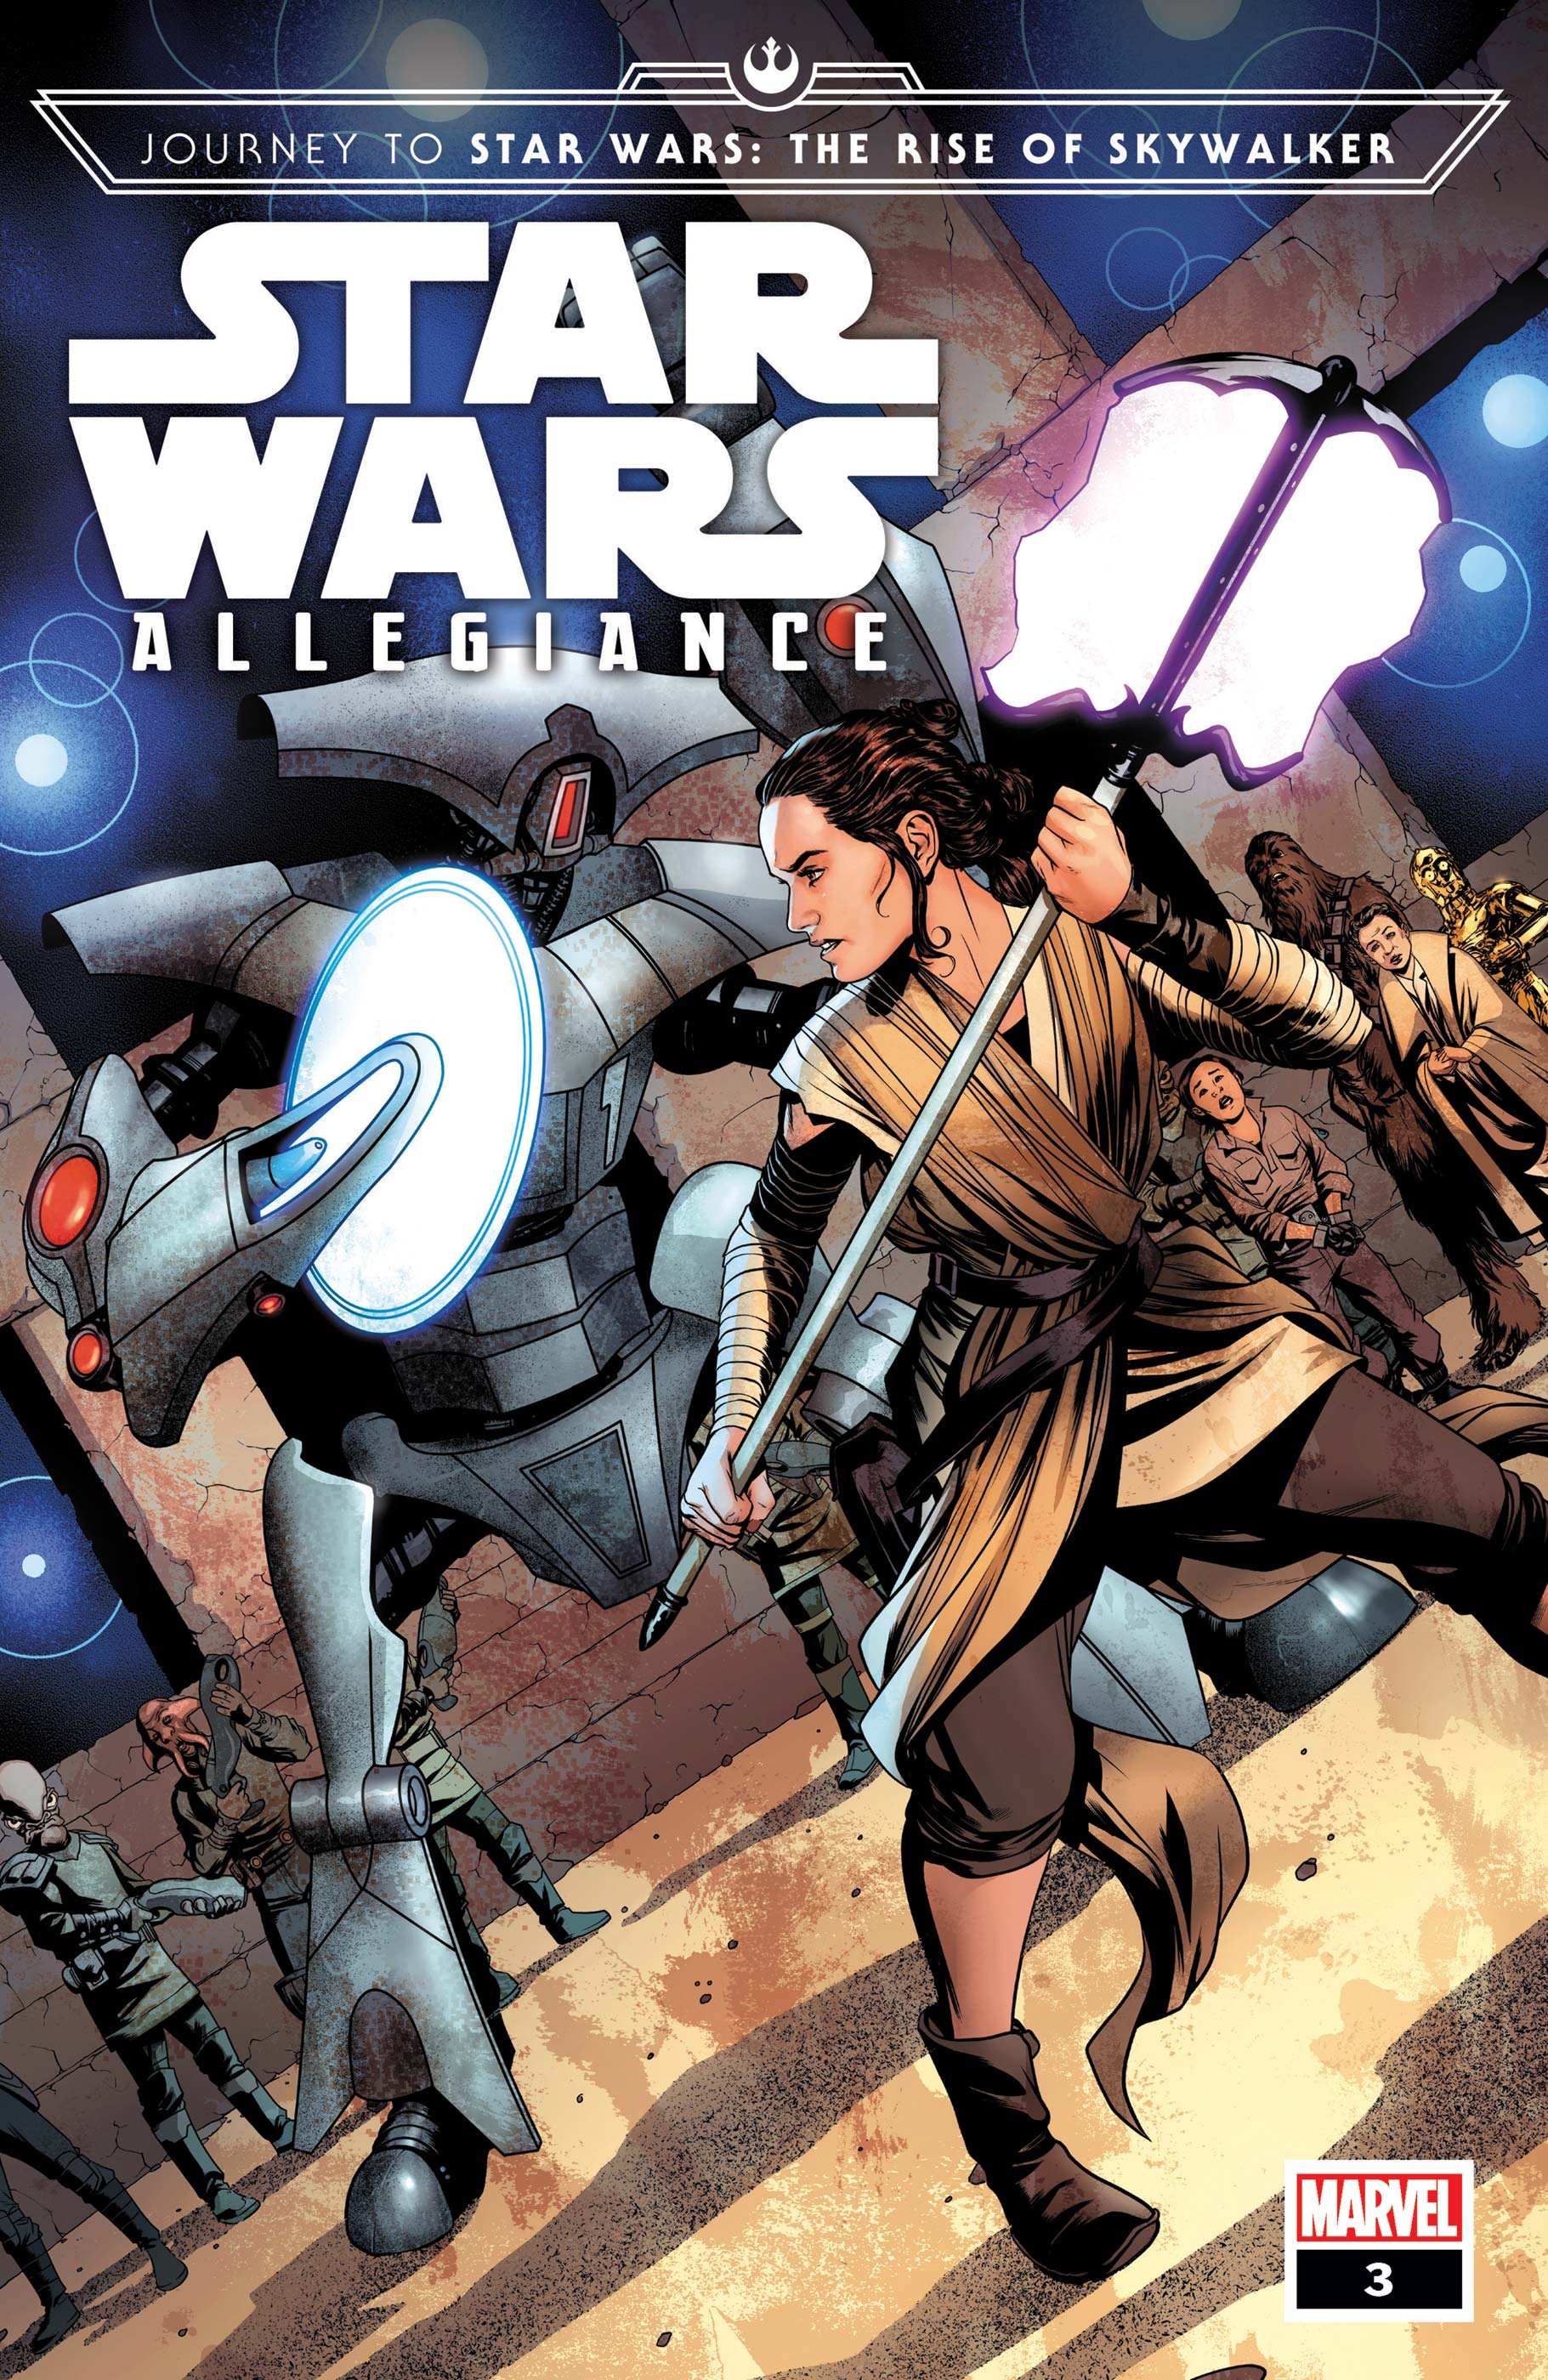 Journey to Star Wars: The Rise of Skywalker - Allegiance (2019) #3 (Variant)